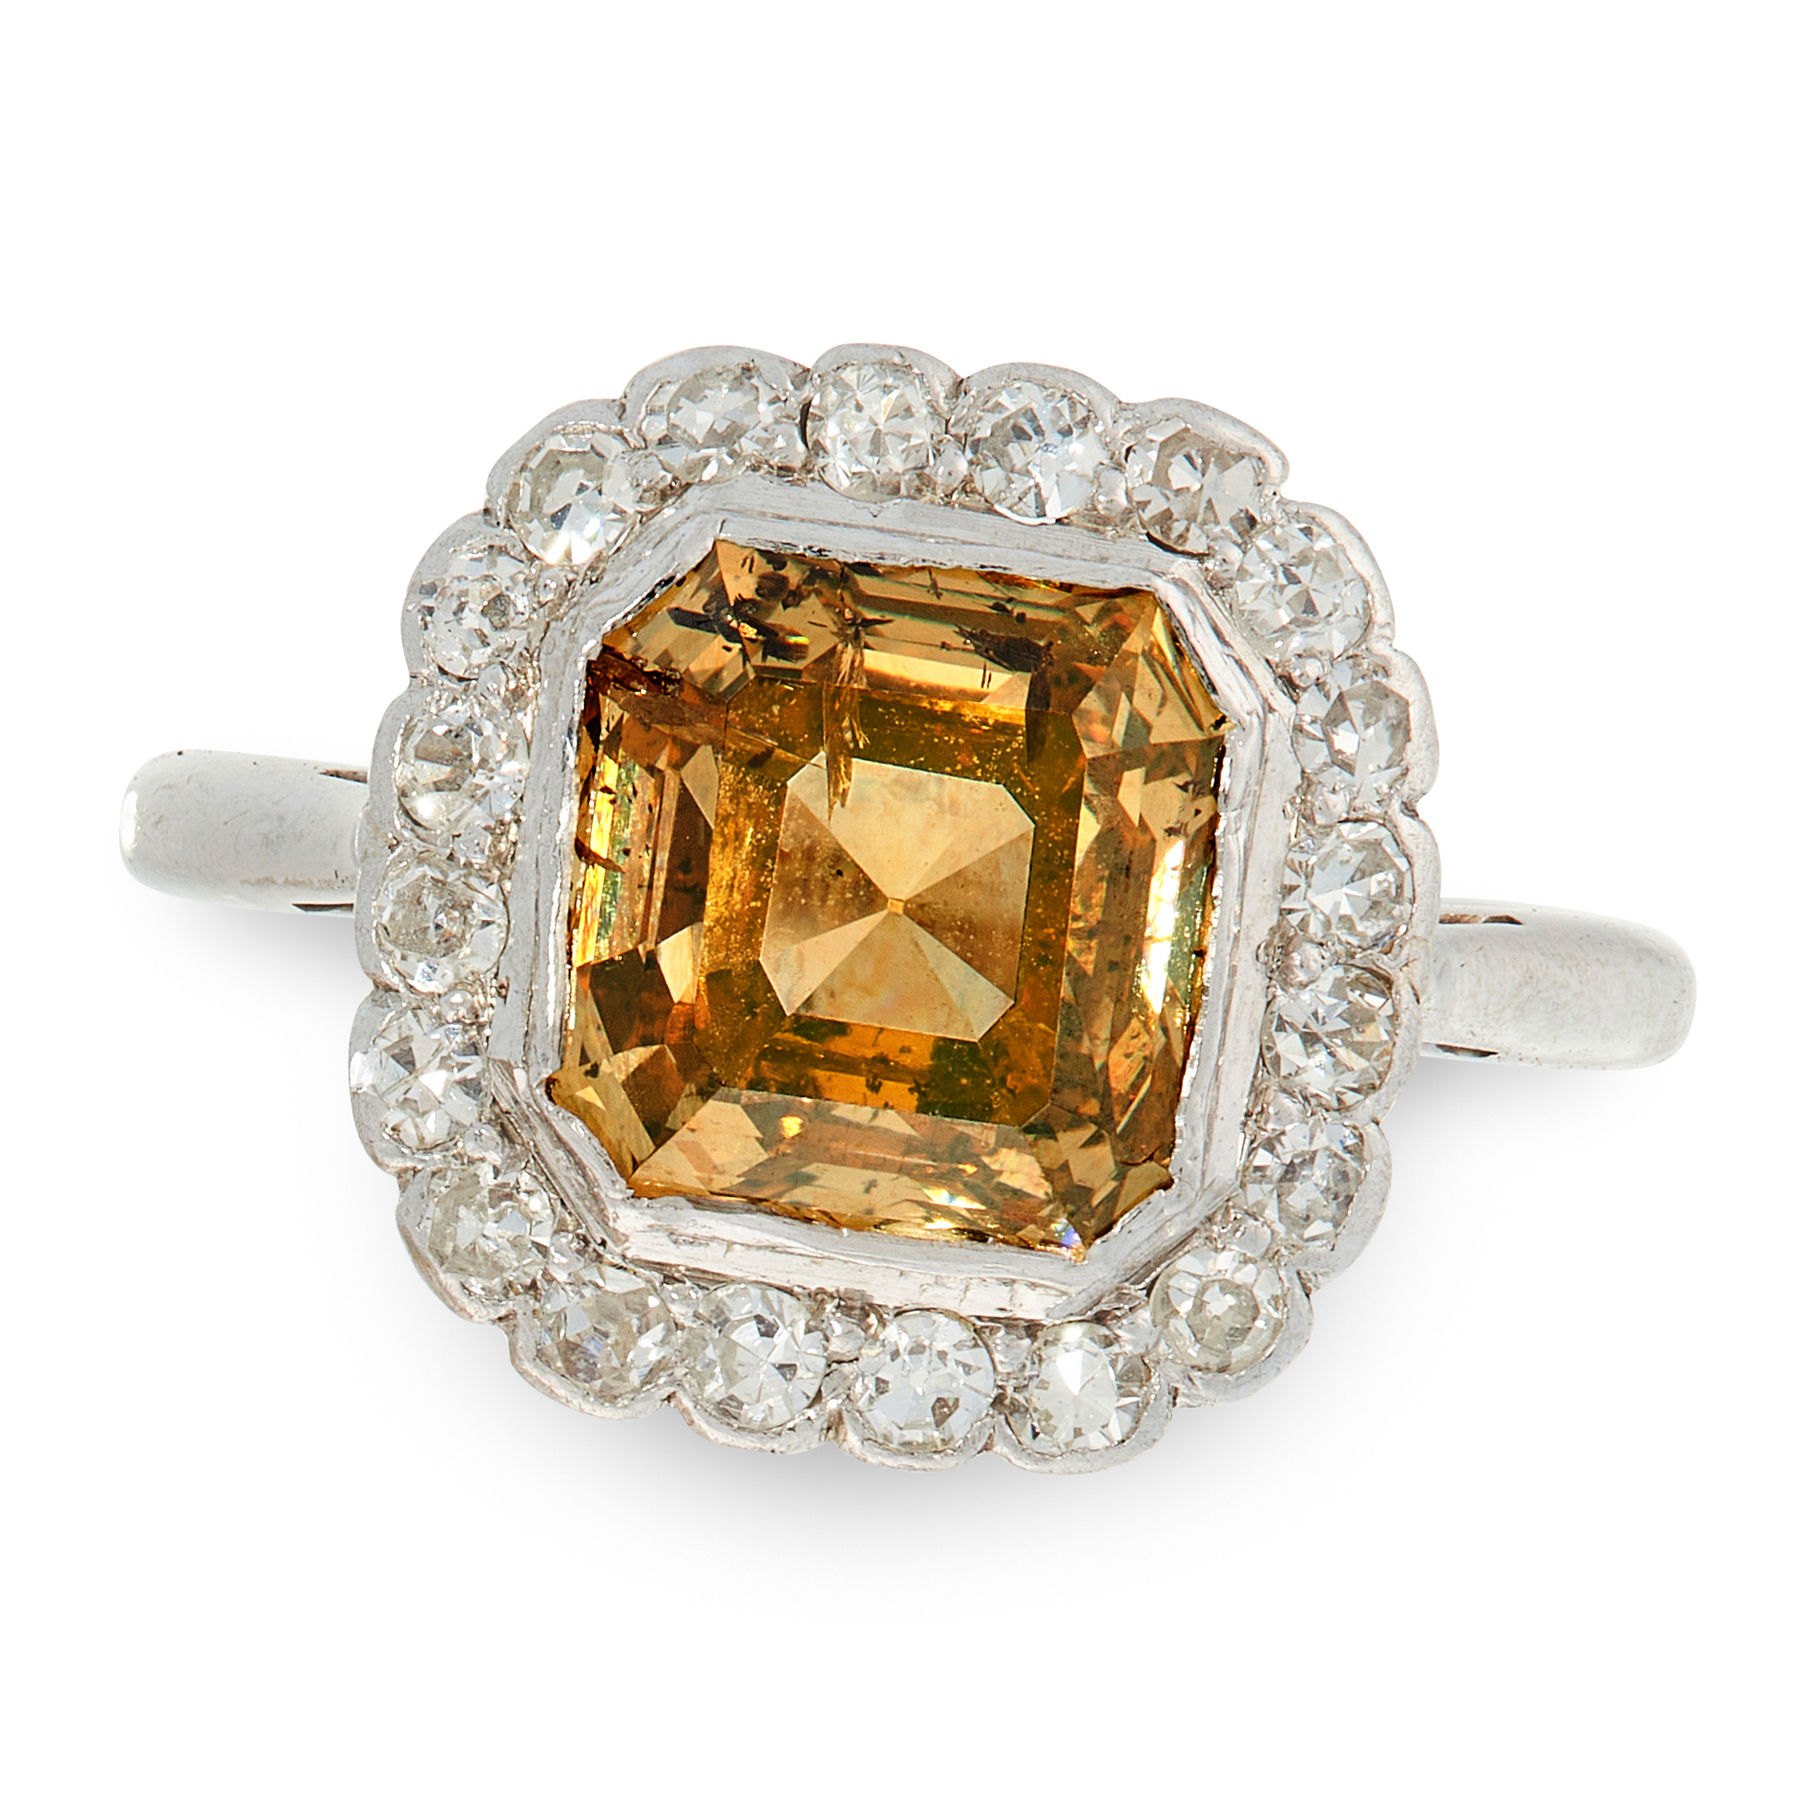 A YELLOW DIAMOND AND WHITE DIAMOND RING in 18ct white gold and platinum, set with an asscher cut - Image 2 of 2